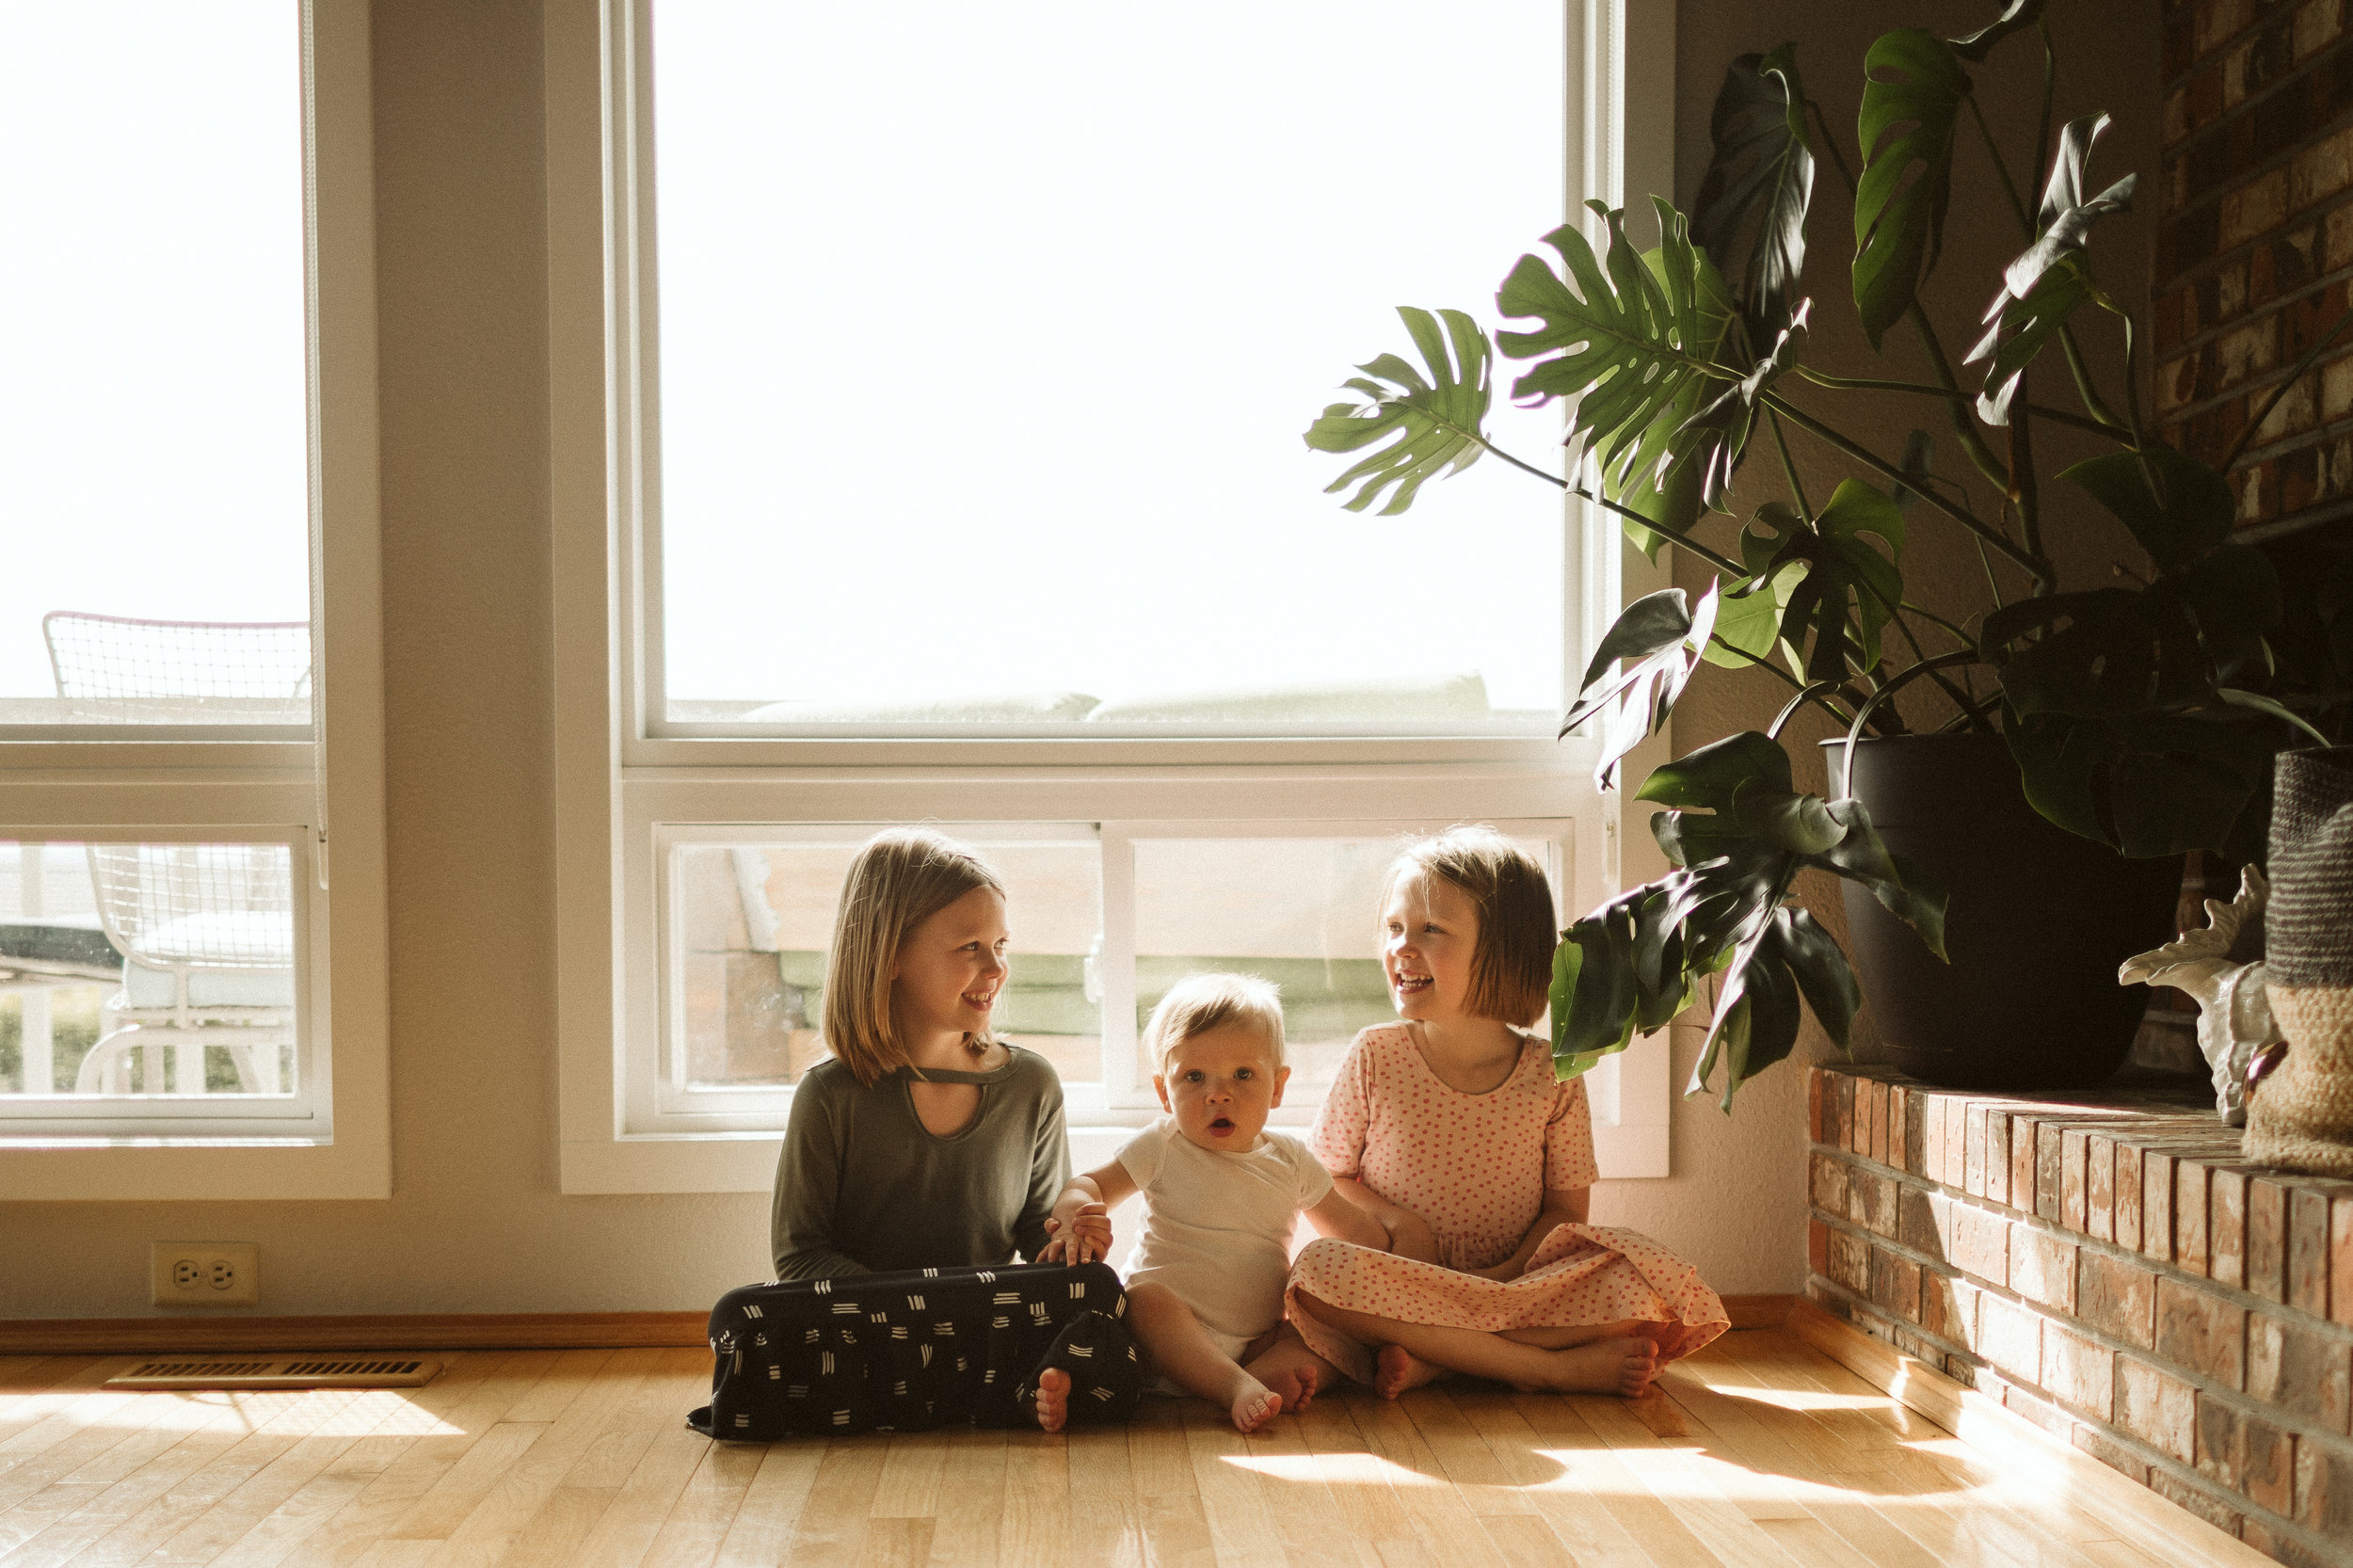 Seattle Family In Home Photography69.jpg